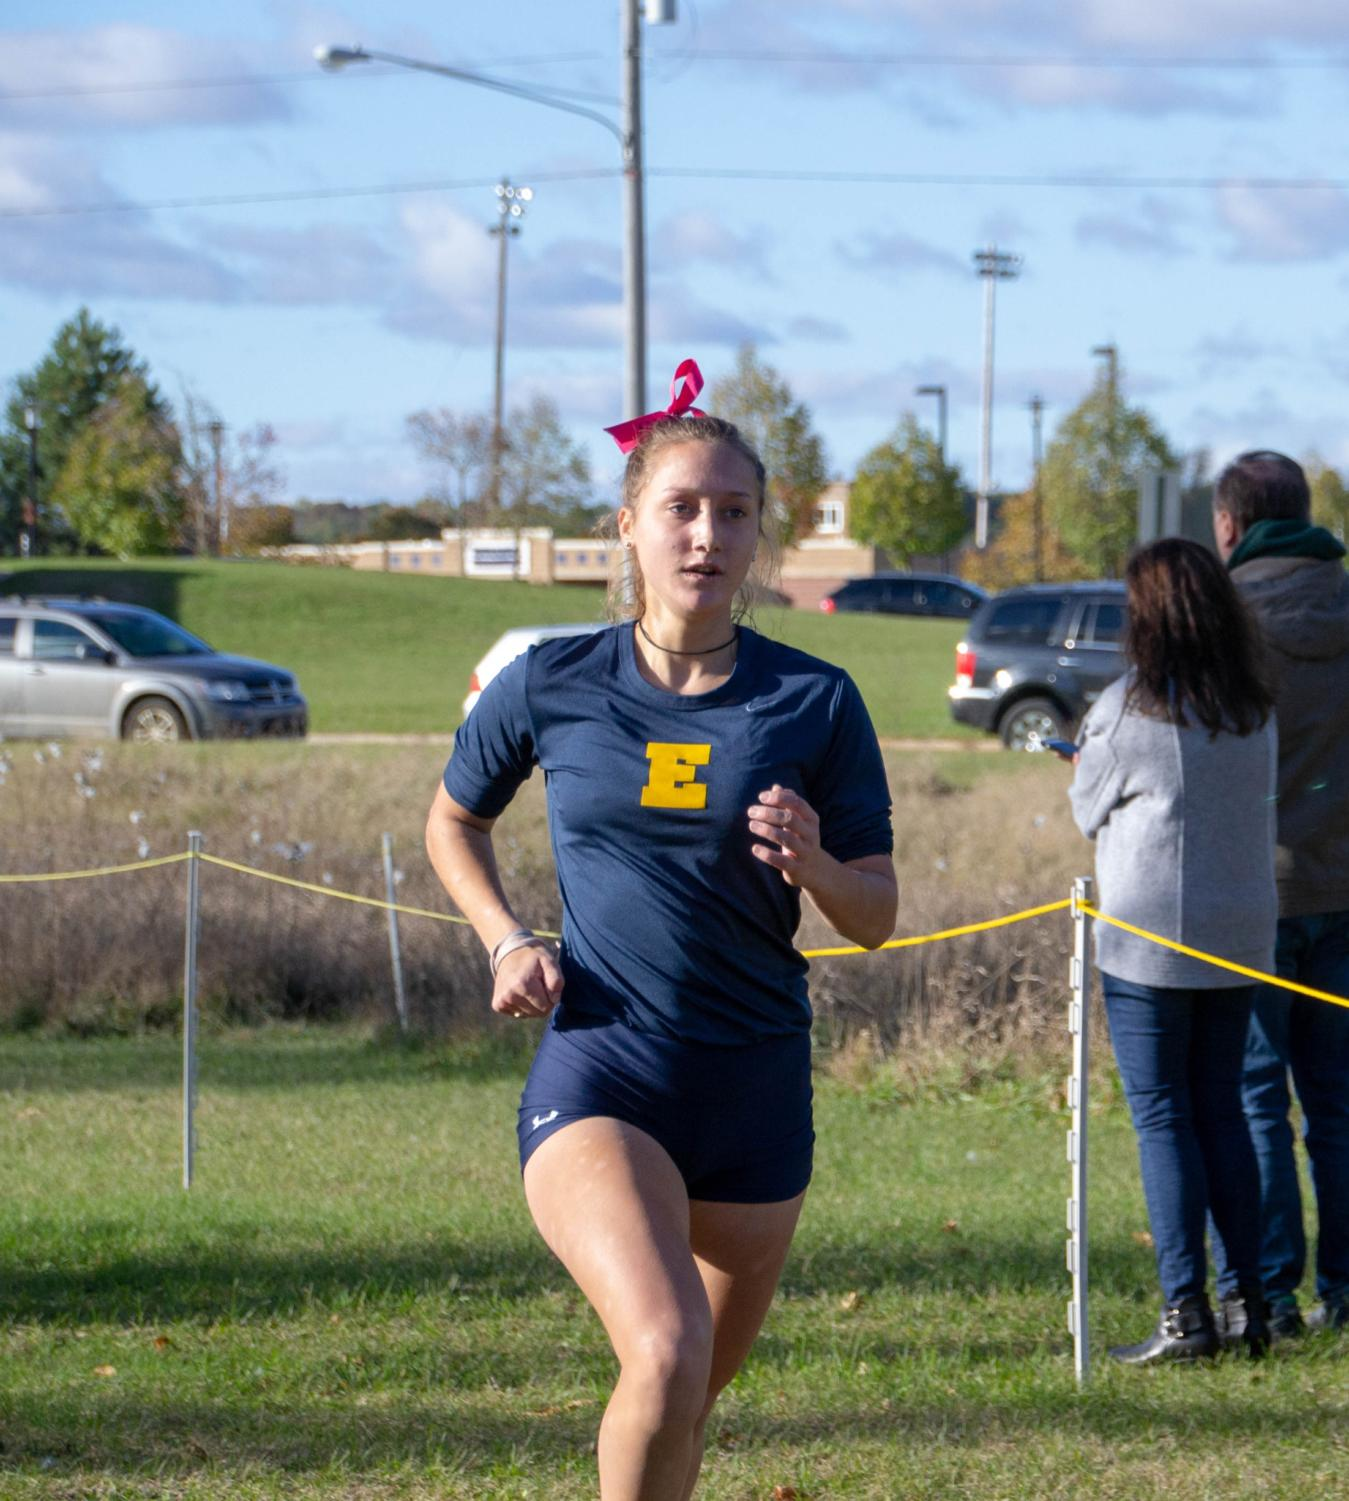 Katherine+Lykins+%2719%2C+state+team+runner%2C+finishes+her+race+at+Otsego+High+School.